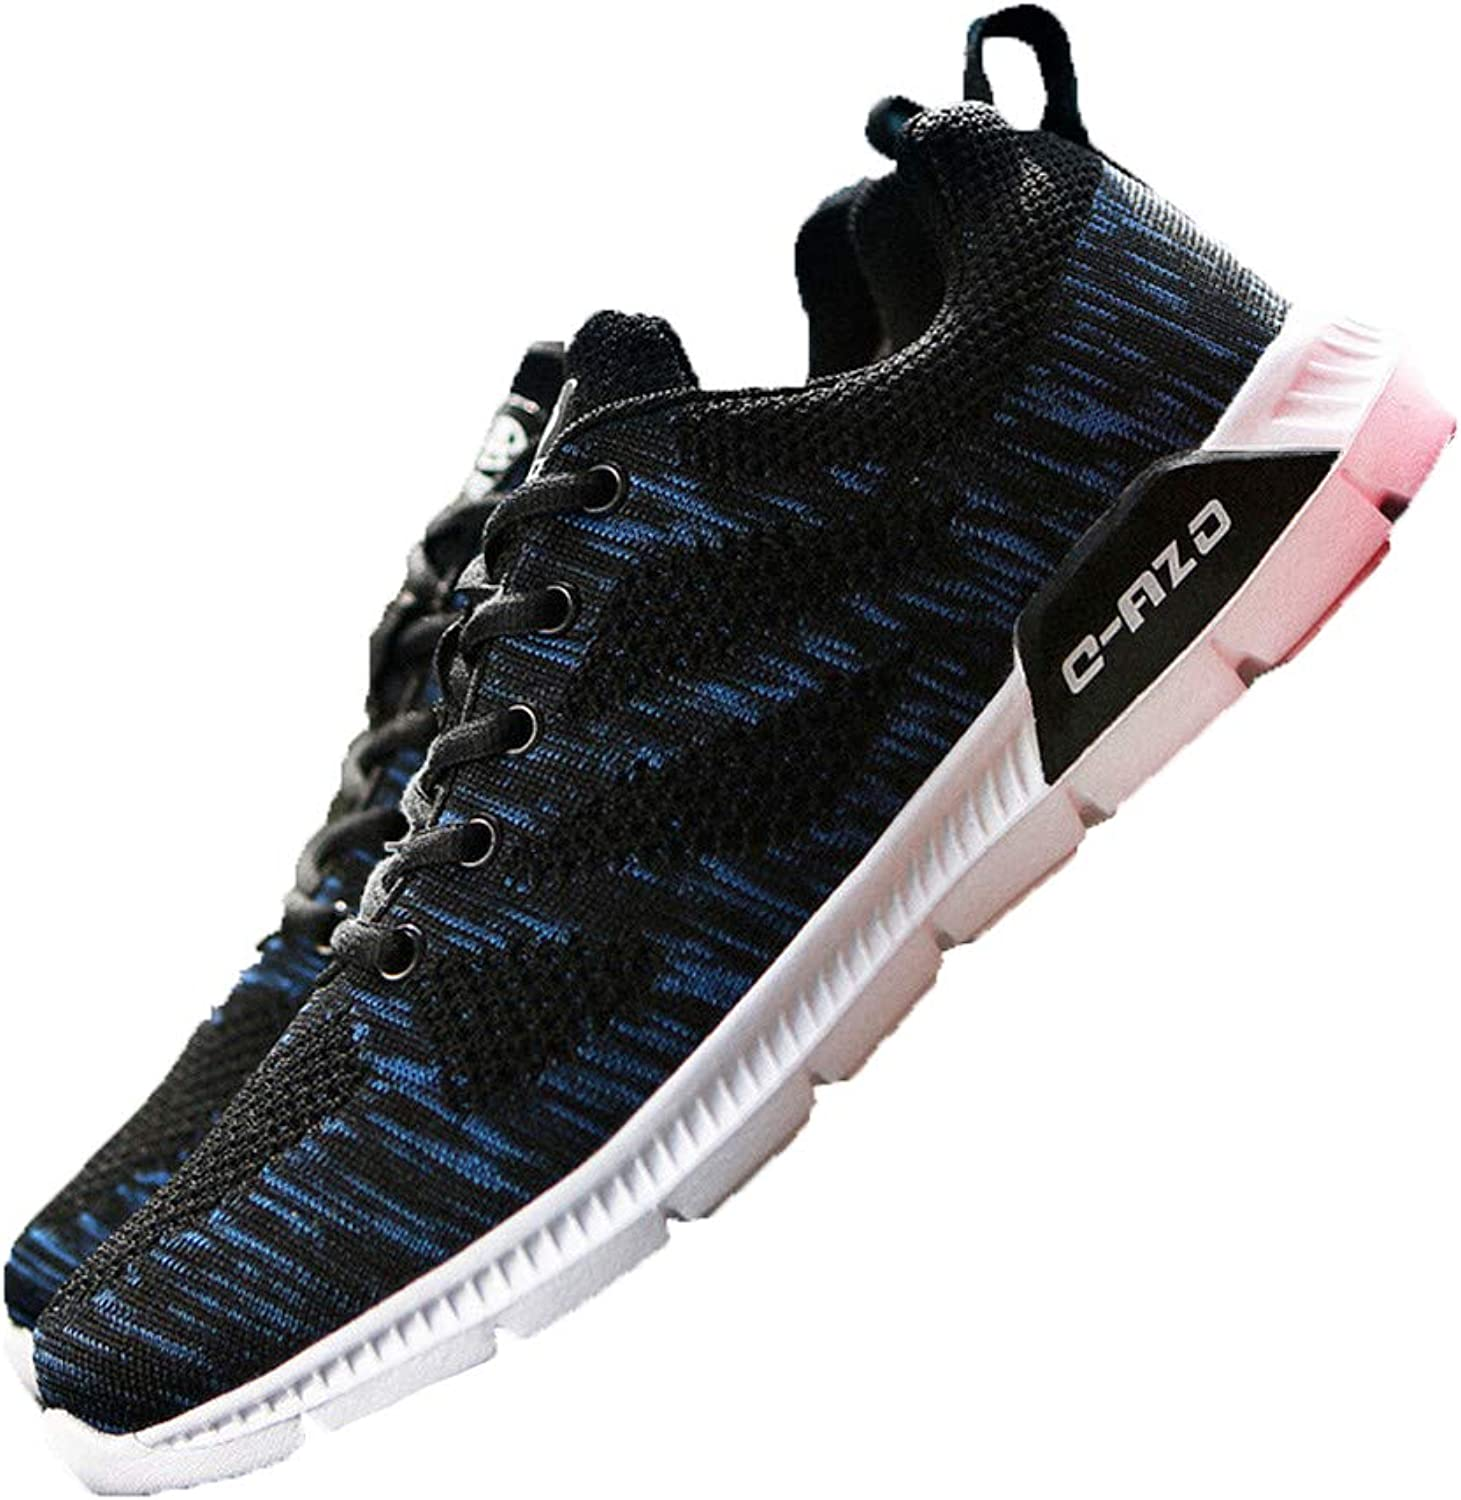 Sunly New Women's Summer Flying Woven Sneakers The Trend of Breathable Casual Running shoes Travel Men's shoes